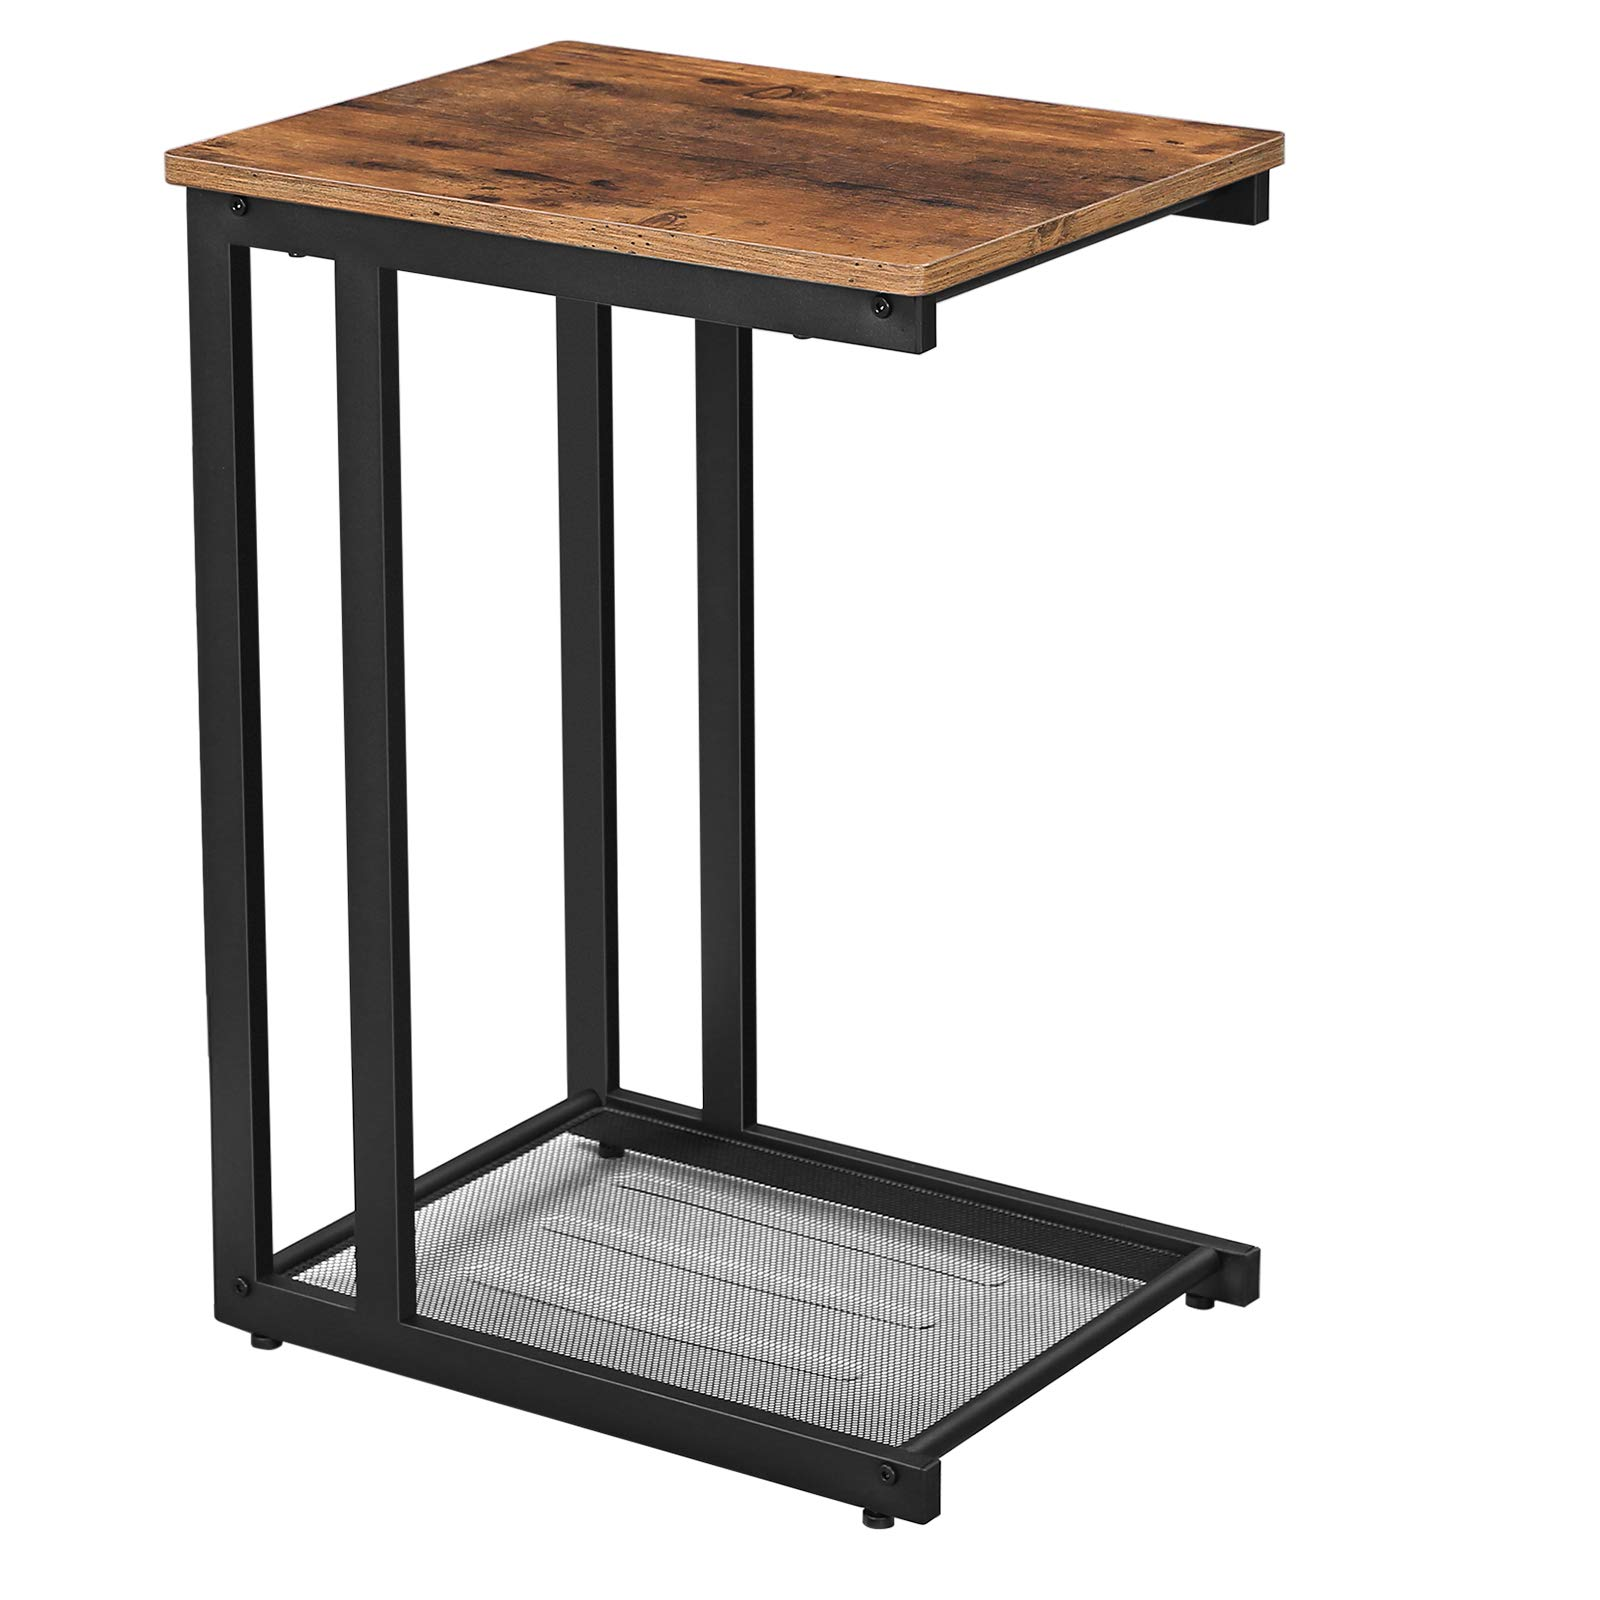 VASAGLE INDESTIC Side Table, End Table with Mesh Shelf, Nightstand, Breakfast by The Bed, Under Sofa, in Living Room Bedroom, Easy Assembly, Space Saving, Industrial, Rustic Brown ULNT51X by VASAGLE